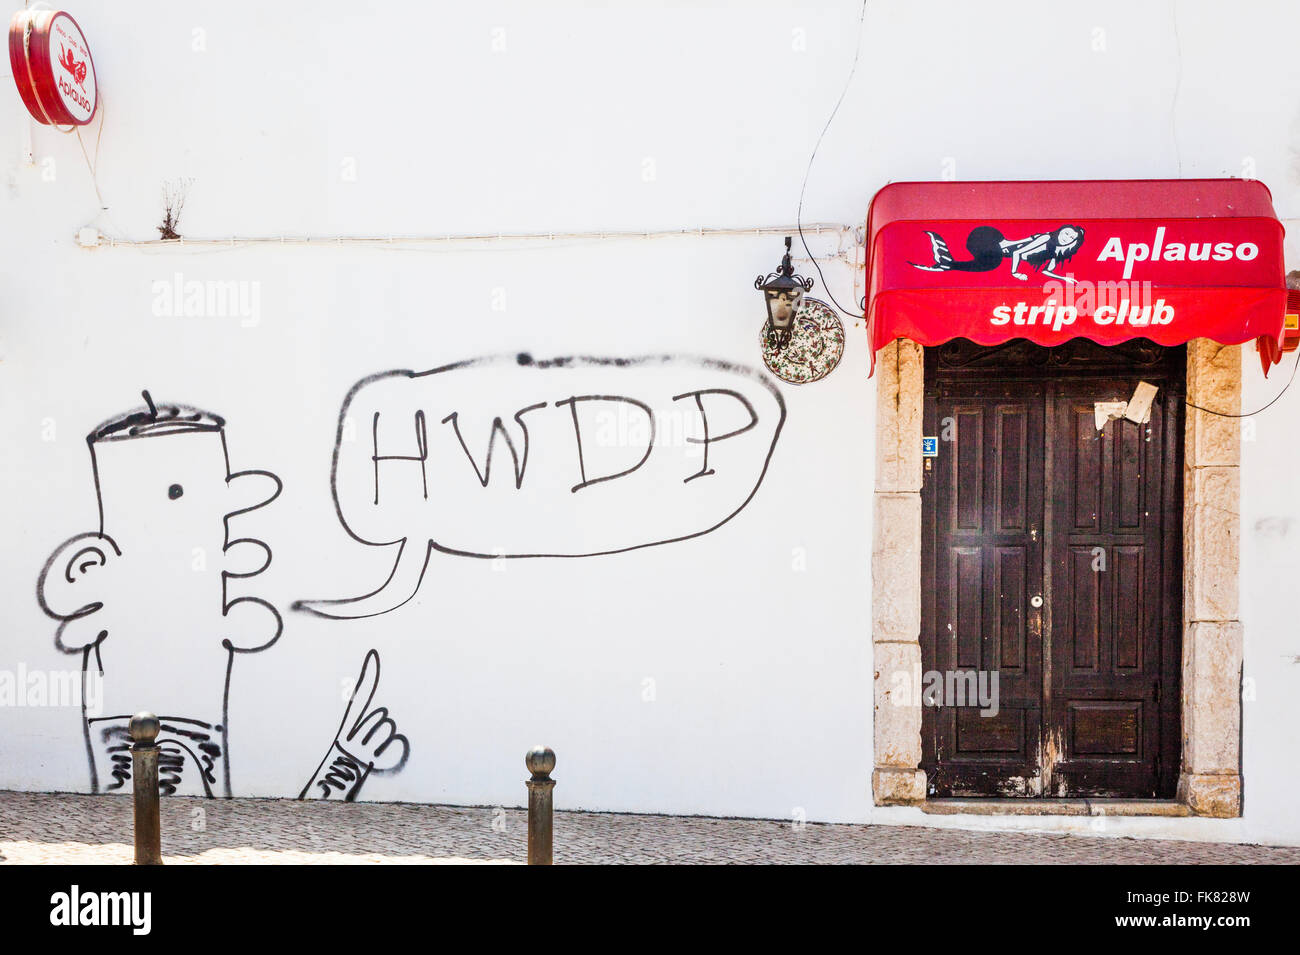 Portugal, Algarve, strip club entrance with graffiti in the historic centre of Lagos, - Stock Image